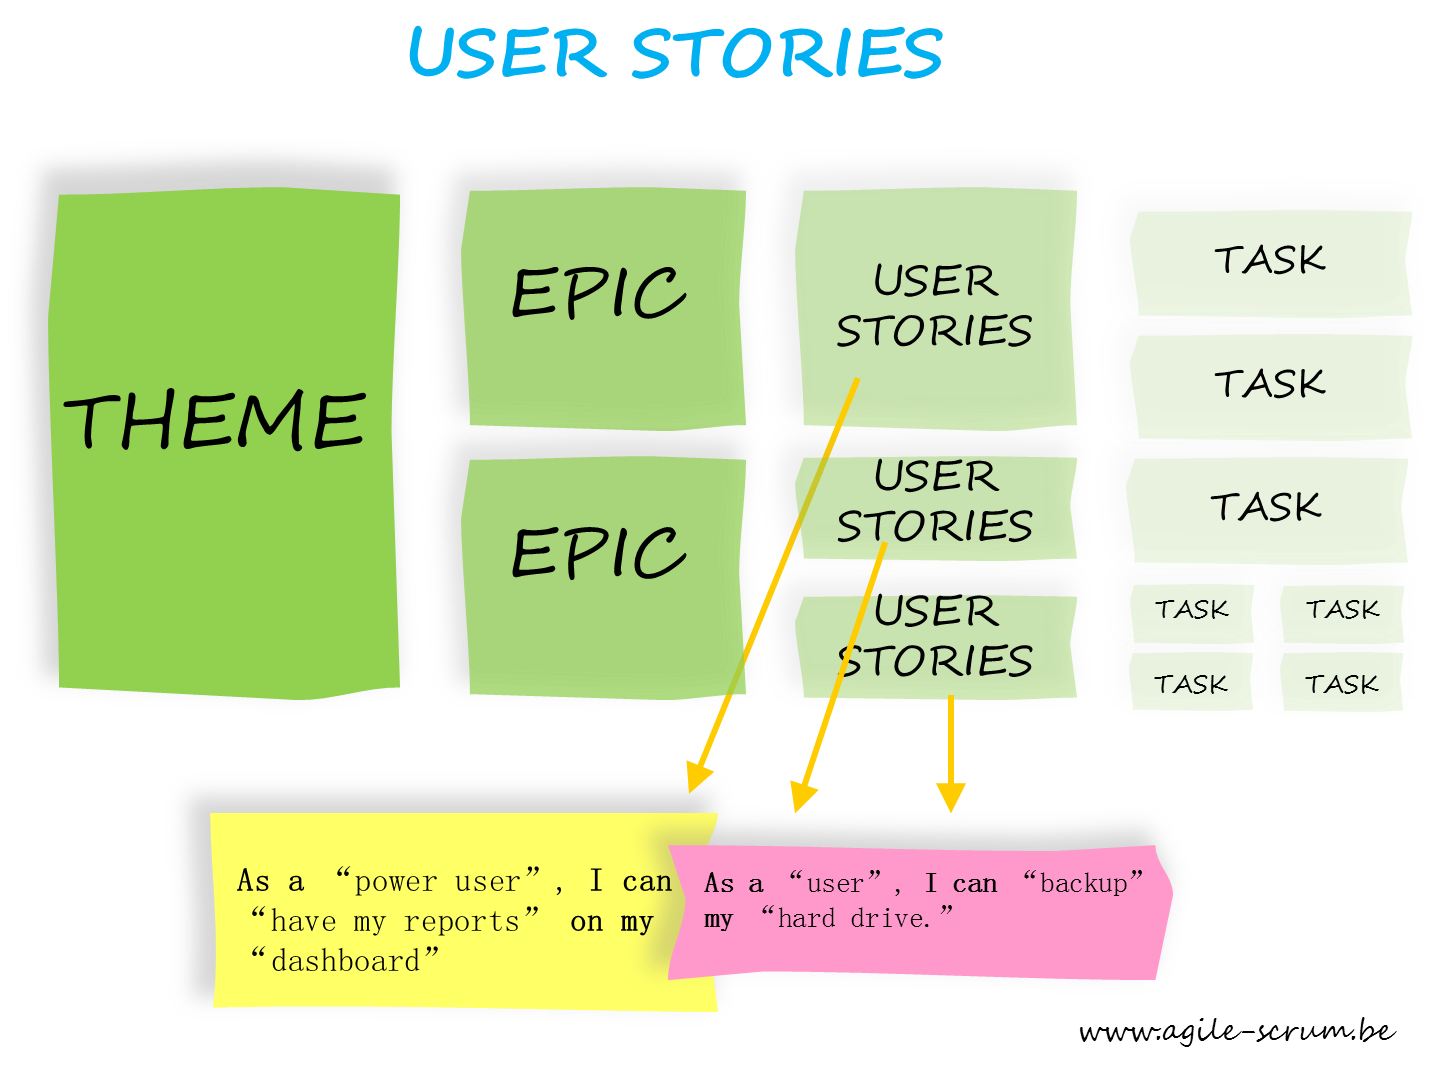 Following Agile This Is How You Should Create User